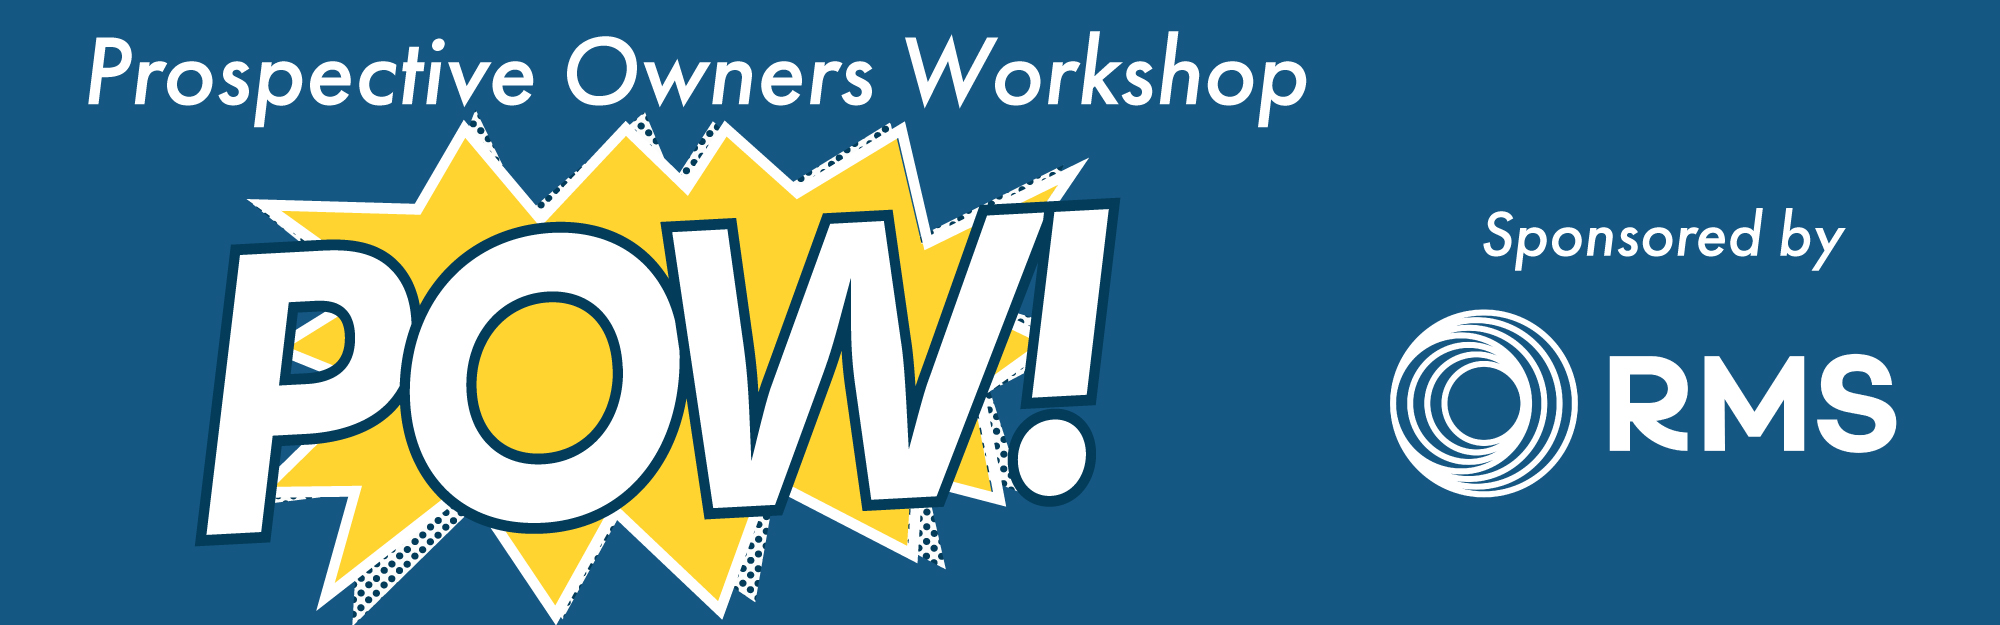 Prospective Owners Workshop (POW)